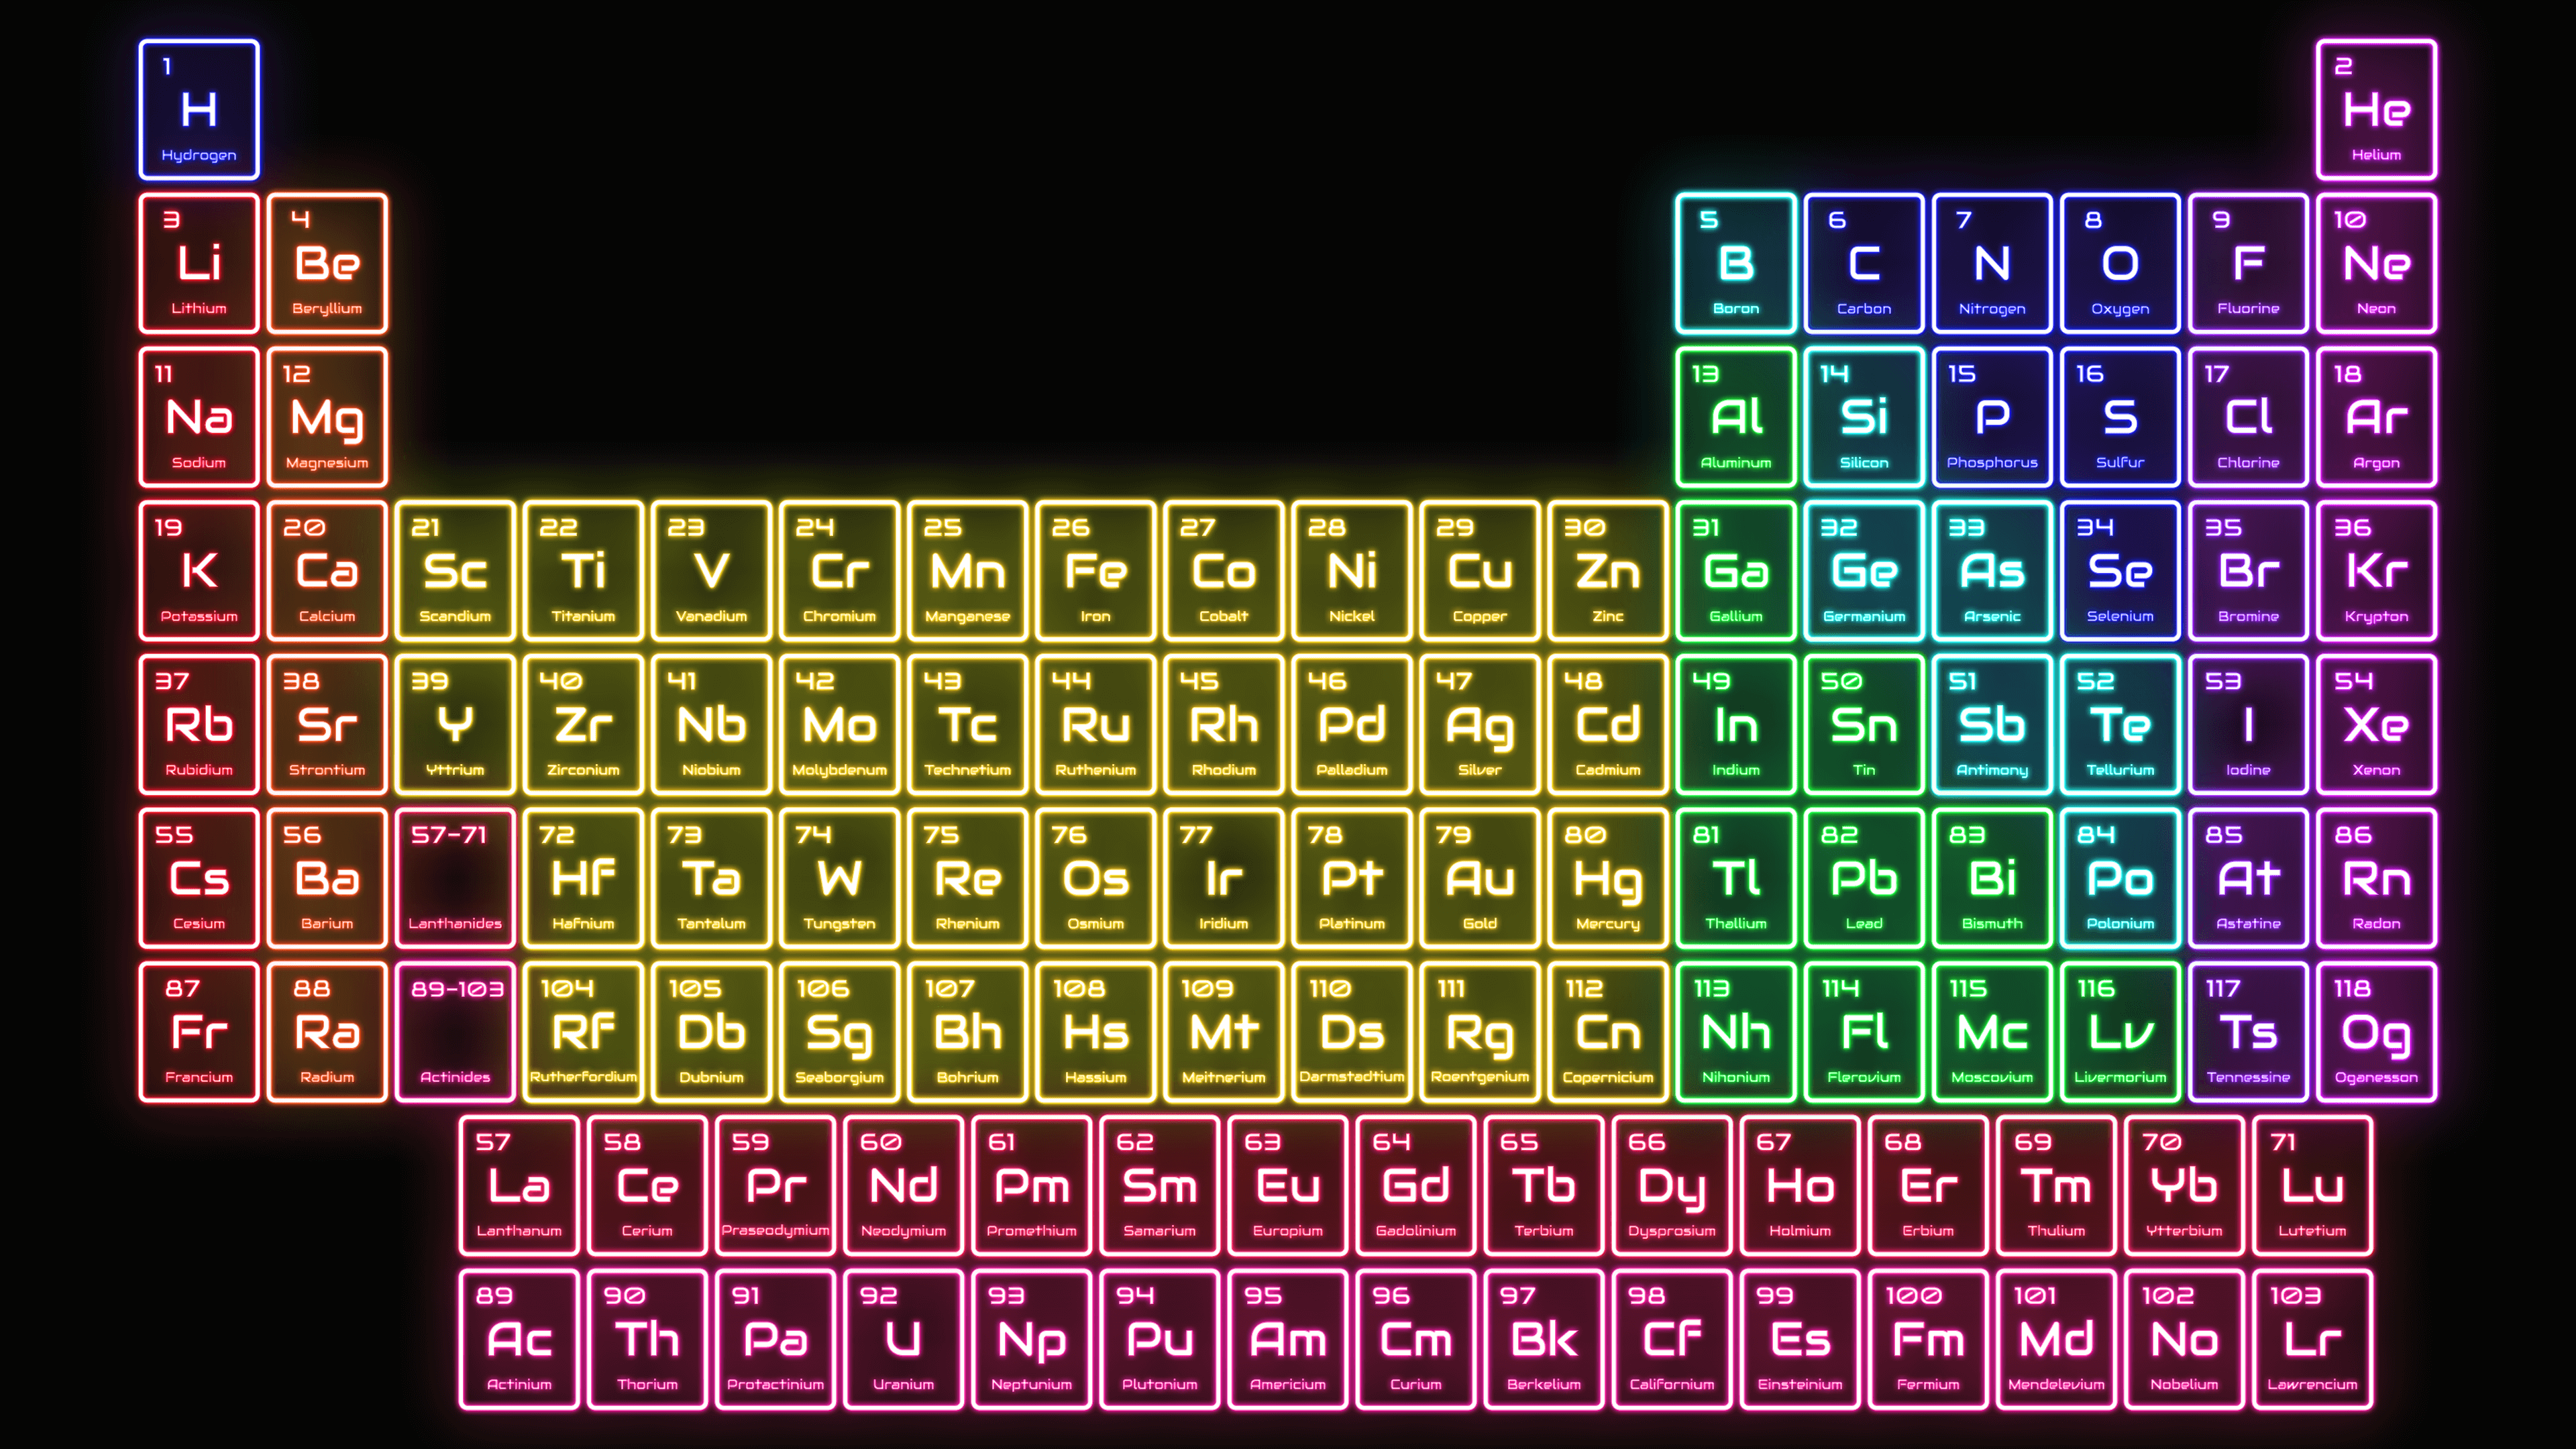 Download Standard Periodic Table